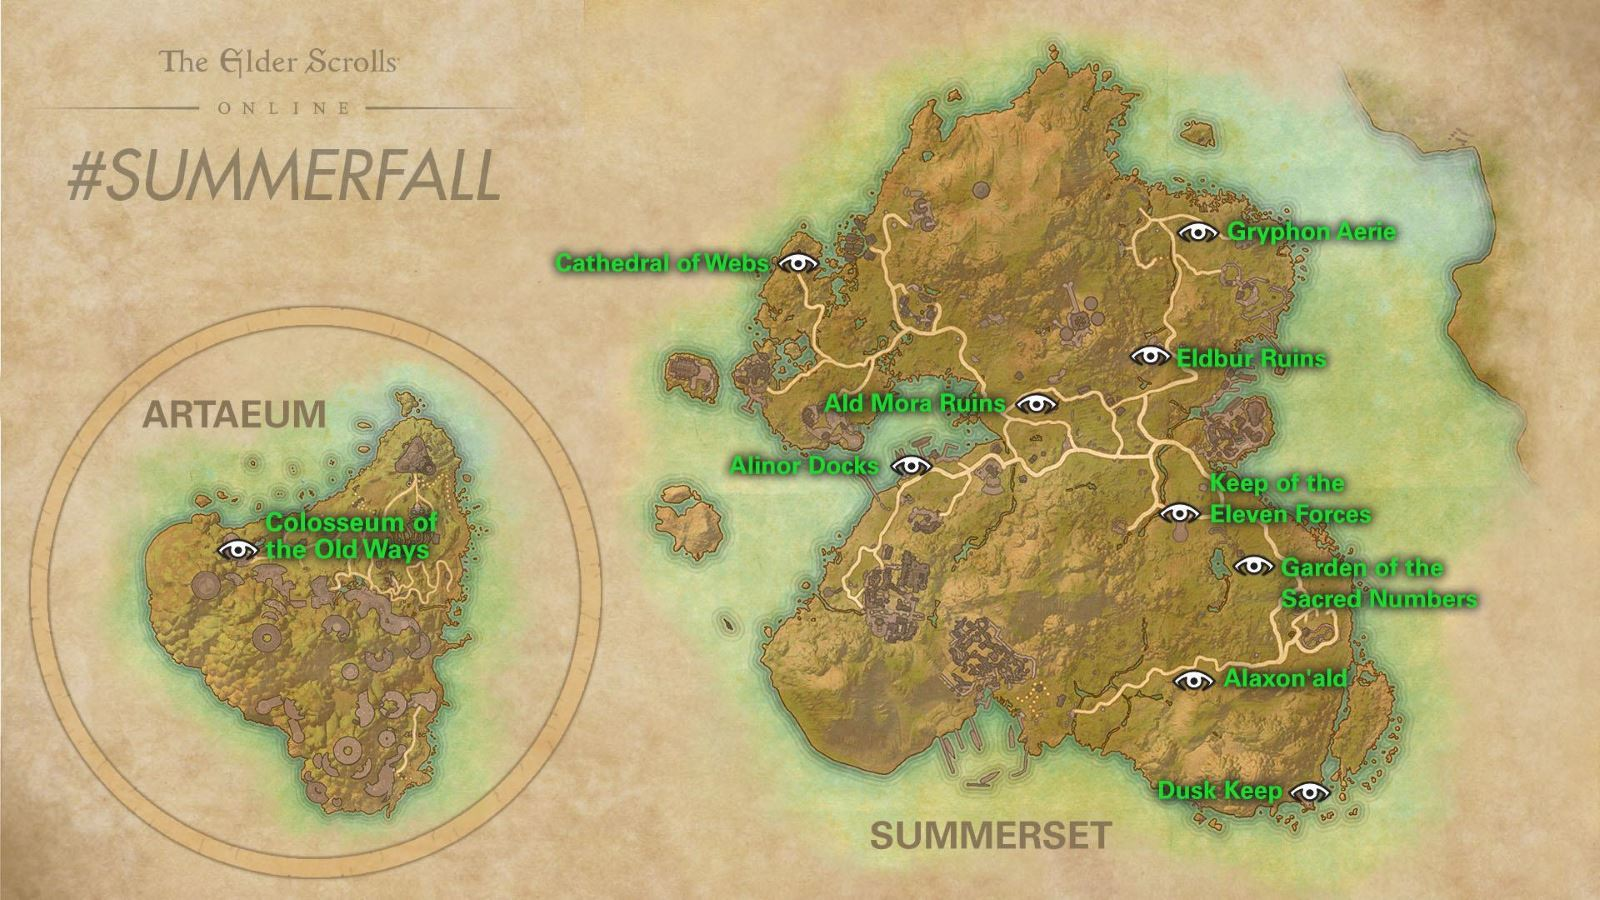 ESO201809Fall 014-1 Info Summerfall 1